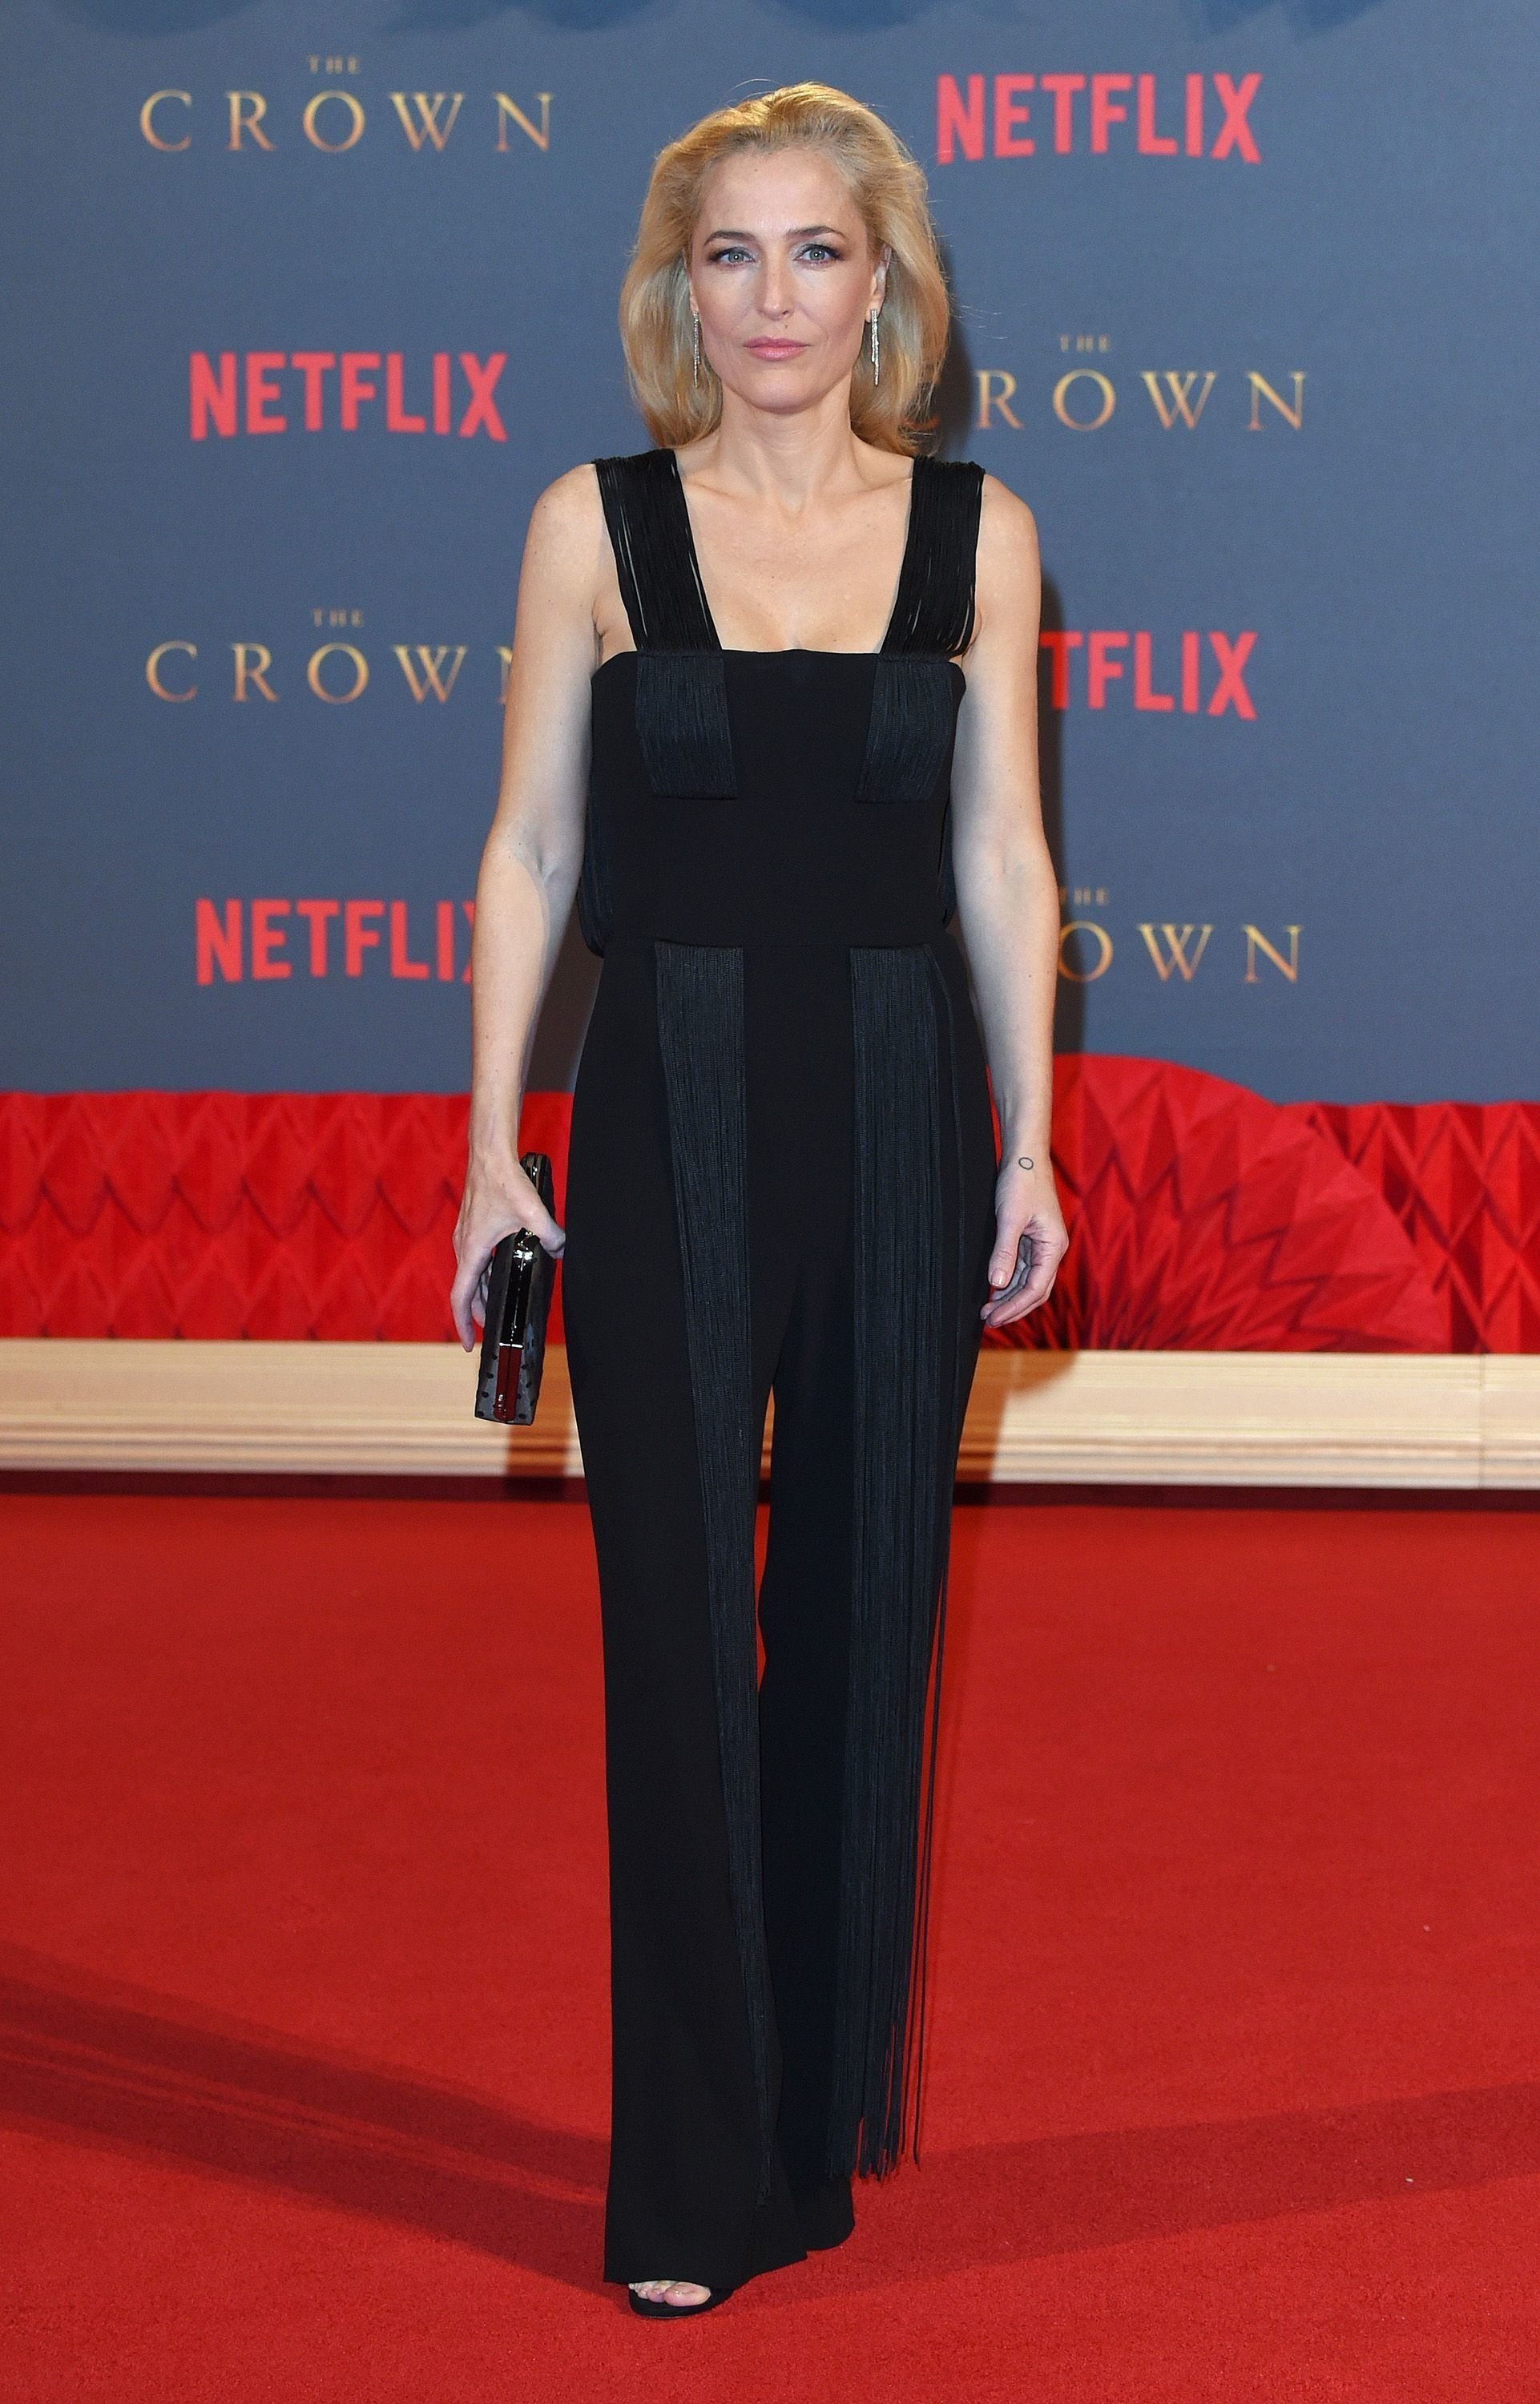 Gillian Anderson Tipped To Play Margaret Thatcher In 'The Crown', And Fans Have Some